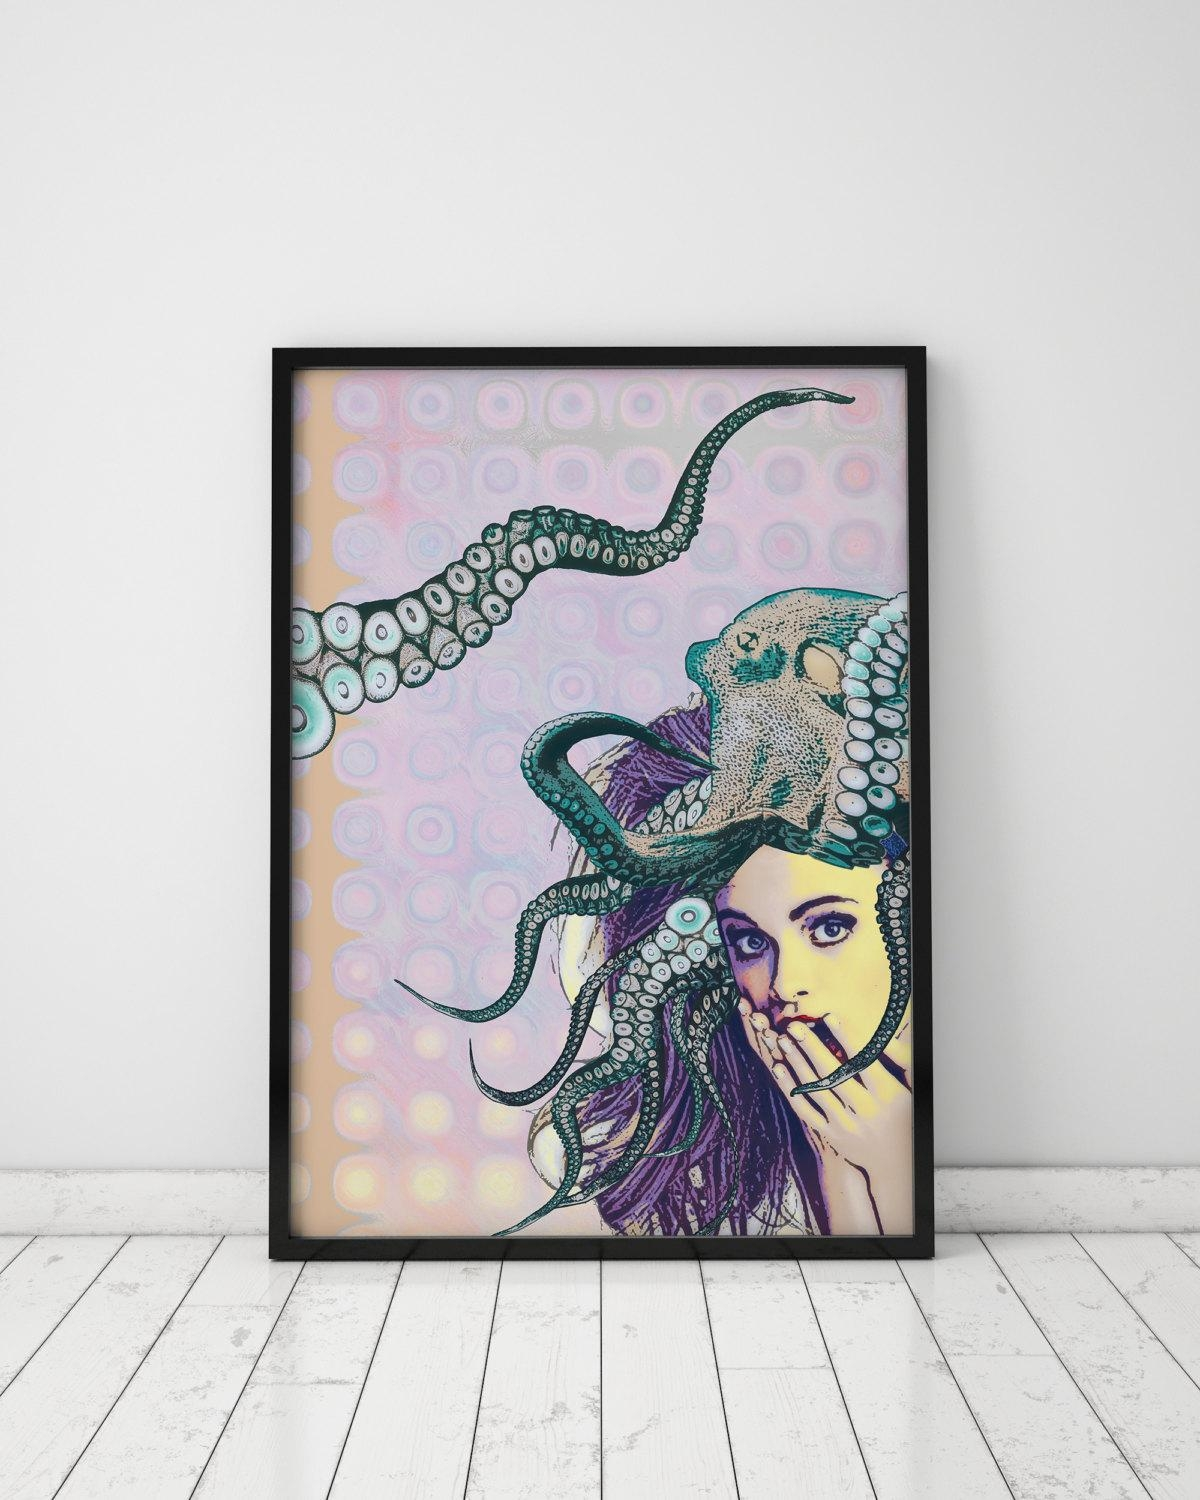 Teenage Girl Wall Decor Ideas 20 Best Wall Art For Teens Wall Art Ideas